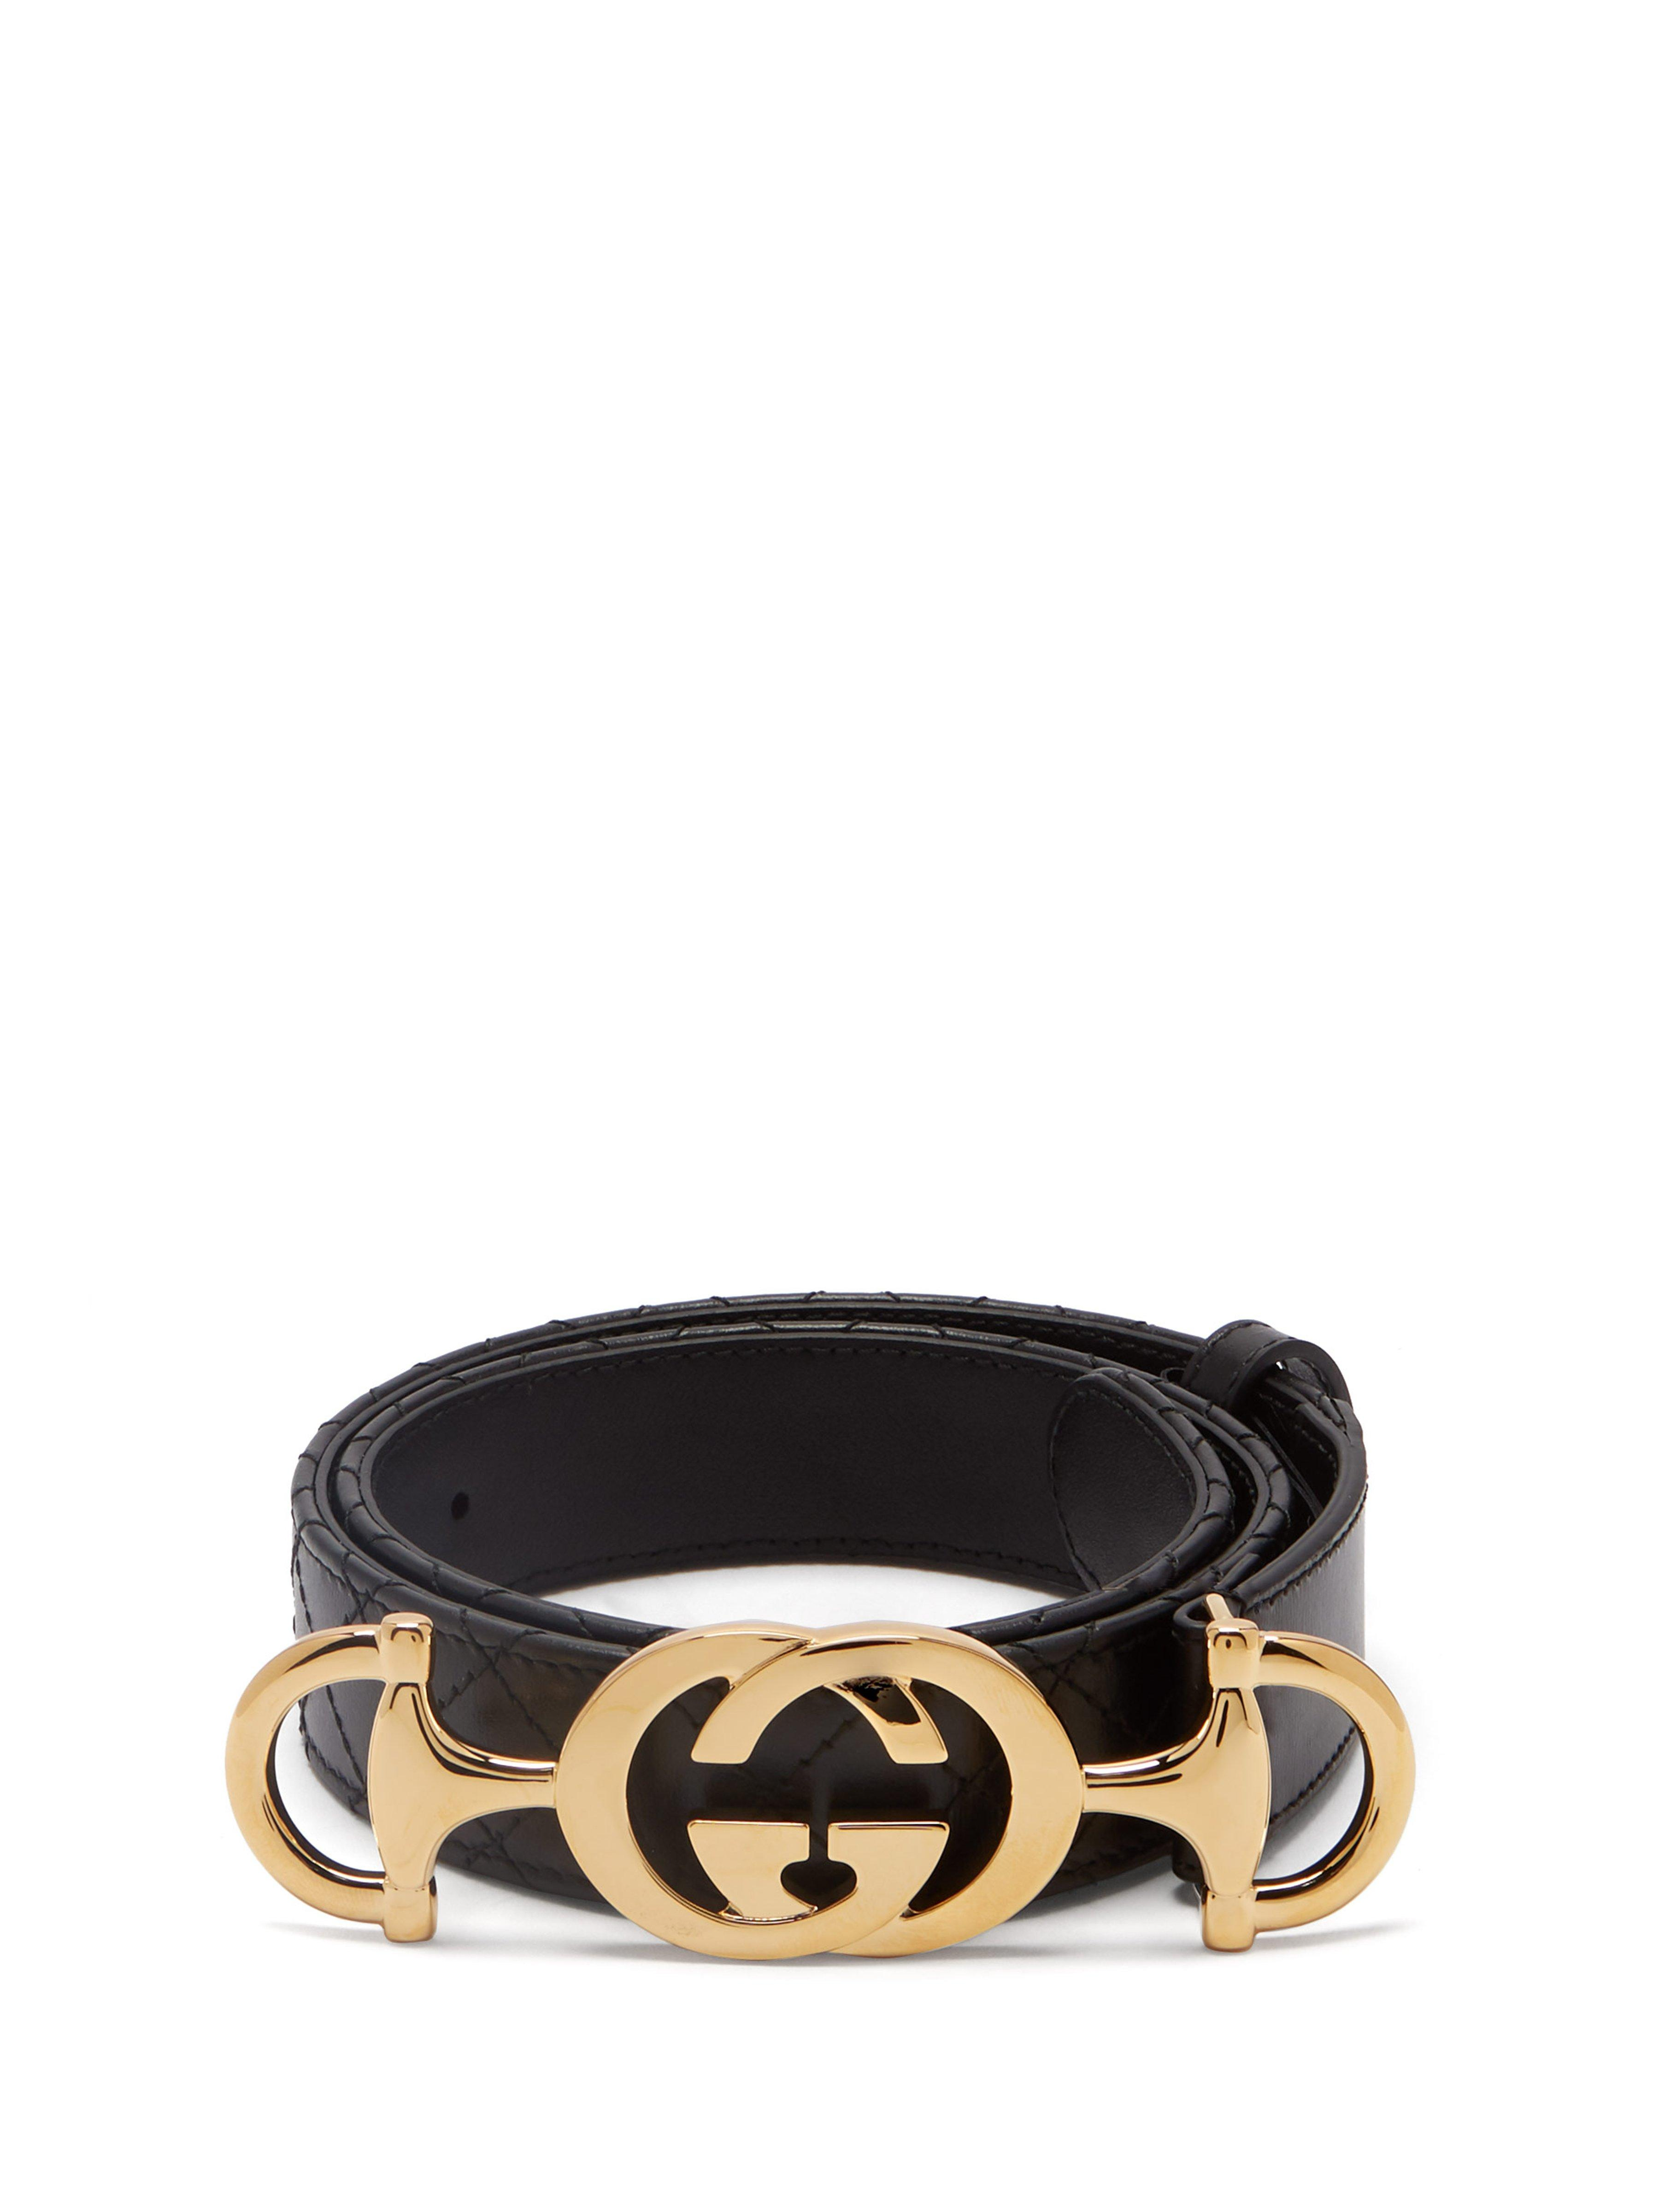 df5a6872e02 Gucci Horsebit Buckle Quilted Leather Belt in Black - Lyst